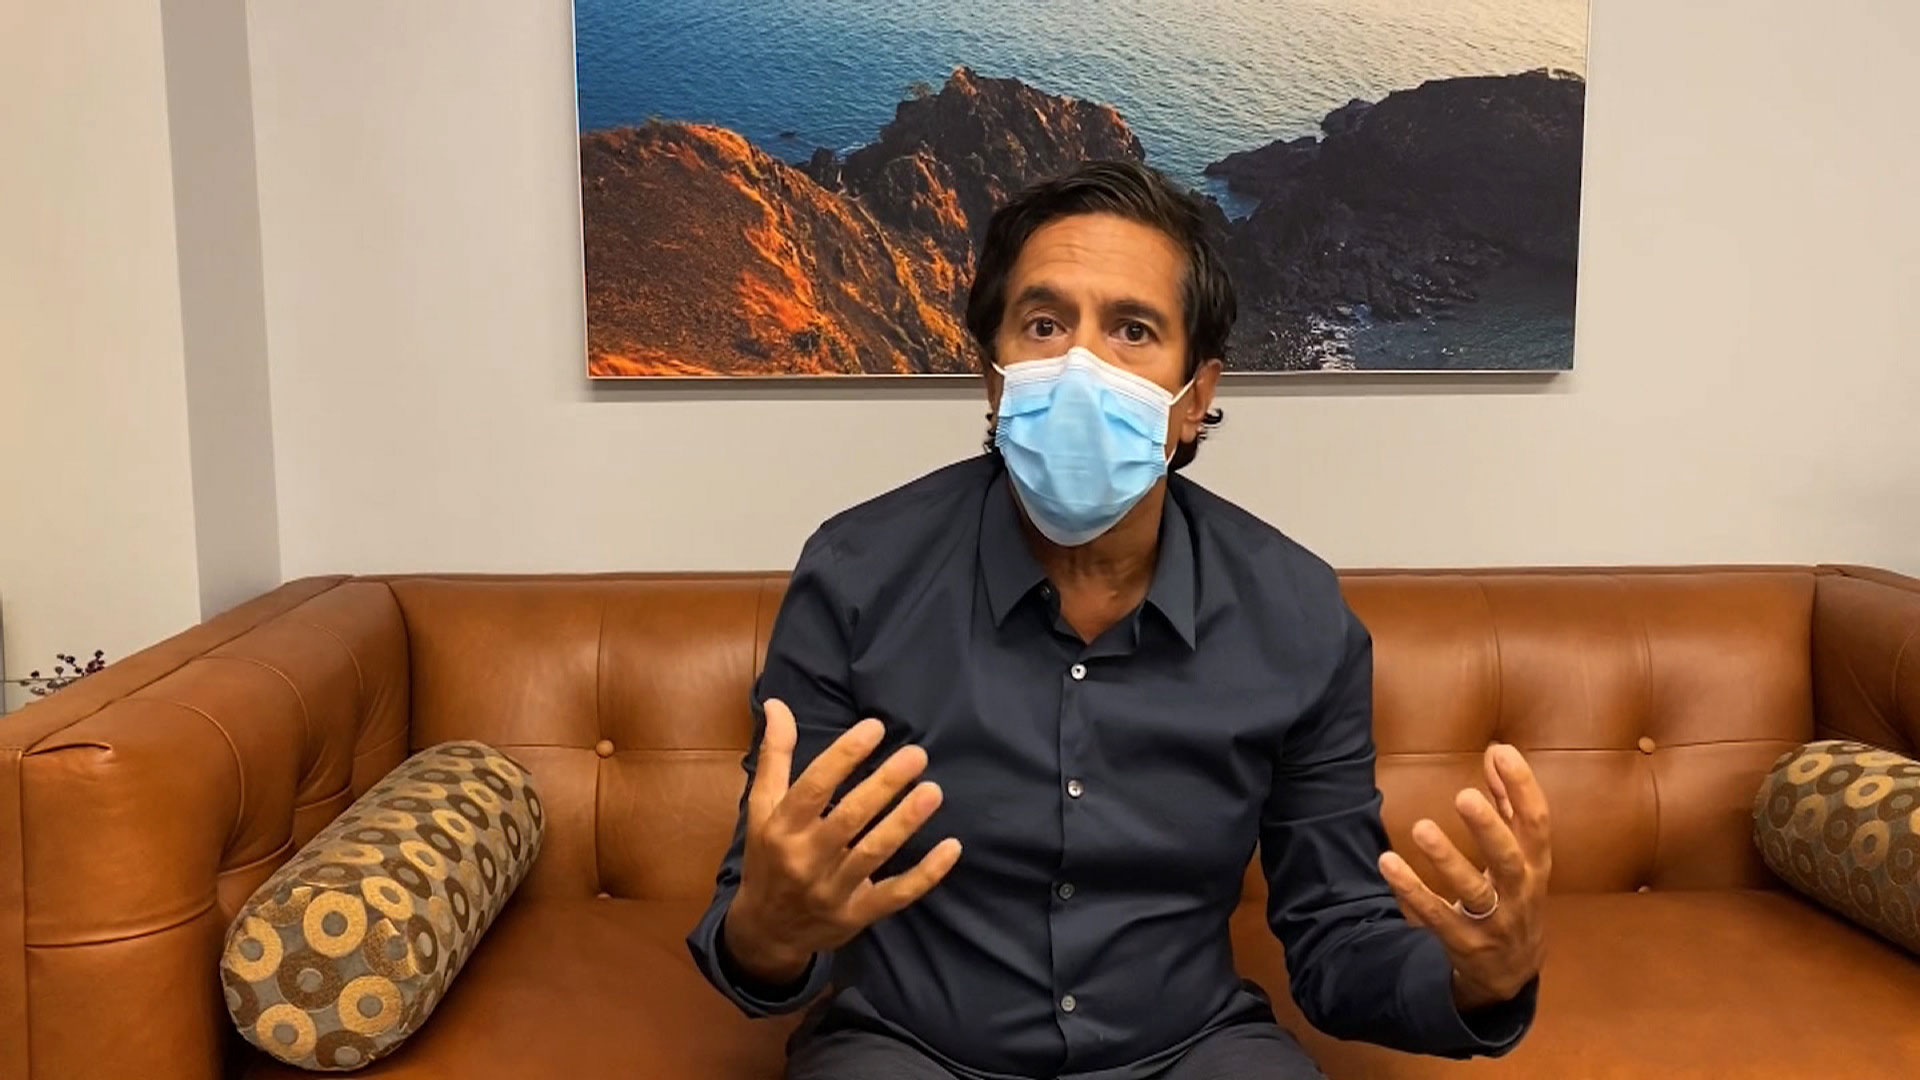 Dr. Sanjay Gupta shows the correct way to wear a face mask during CNN's global coronavirus town hall on August 6.